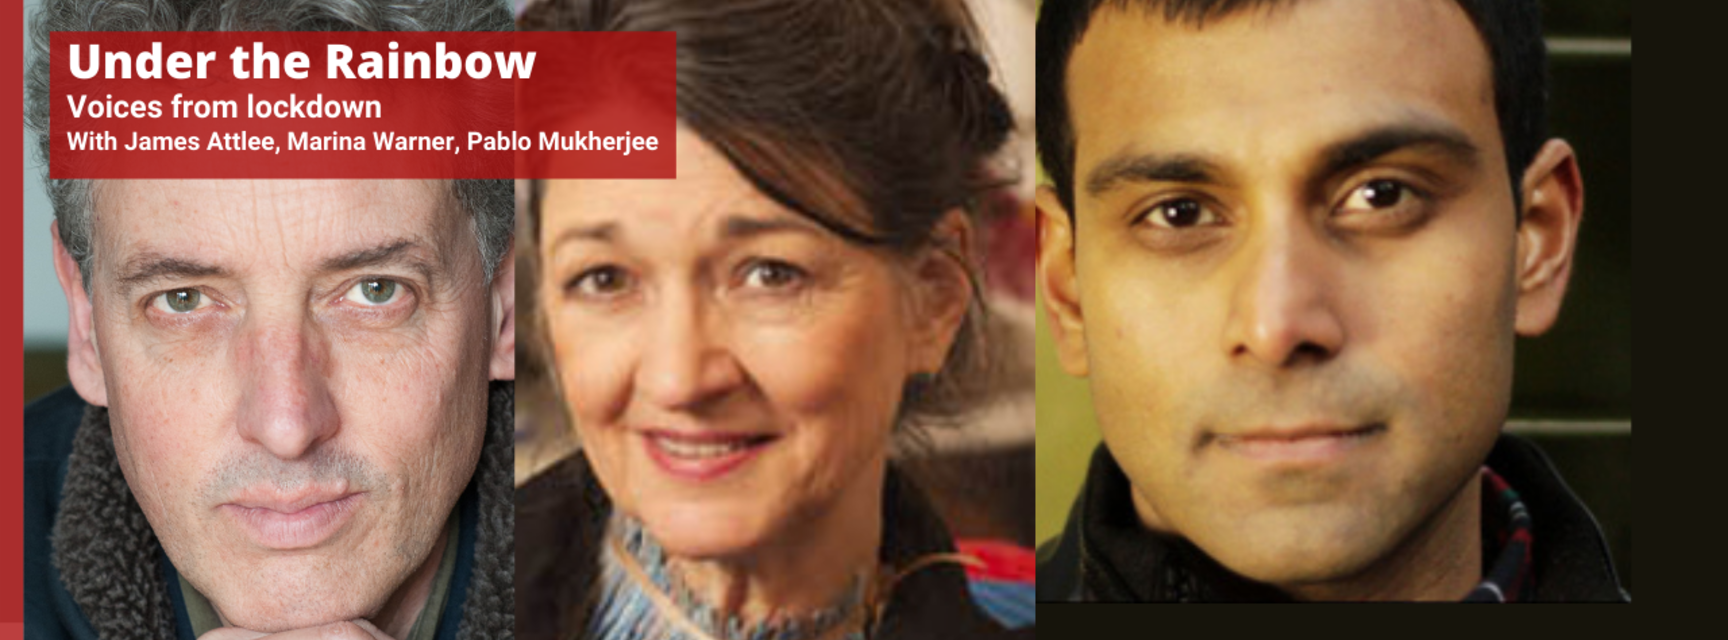 Photos of three people. Text reads 'Under the Rainbow: Voices from Lockdown. With James Attlee, Marina Warner, Pablo Mukherjee'